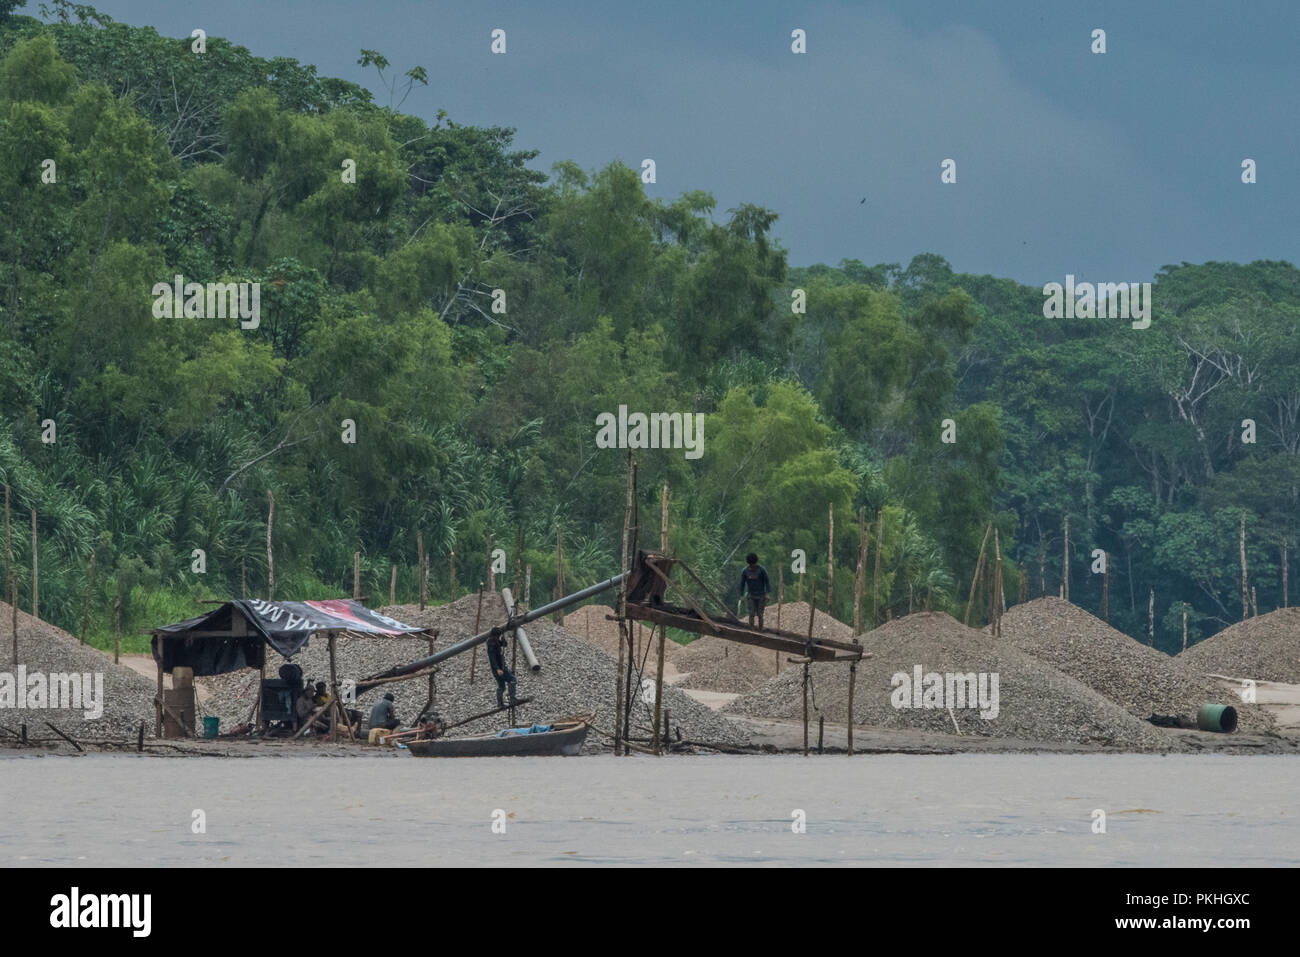 Gold mining along the Madre de Dios river in Peru.  In recent years mining has undergone a boom and become a serious environmental hazard. - Stock Image